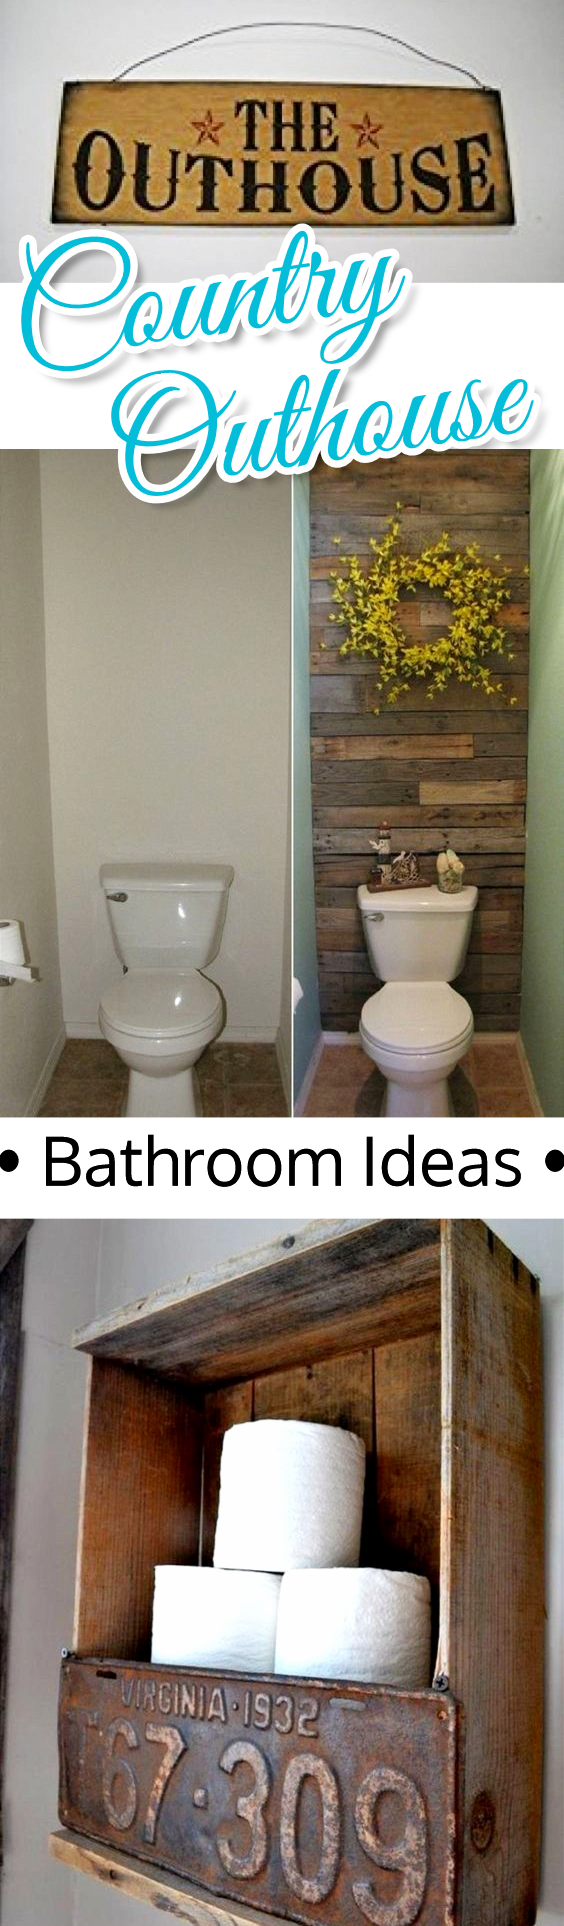 Country Outhouse Bathroom Decor Ideas - fun idea for a small bathroom